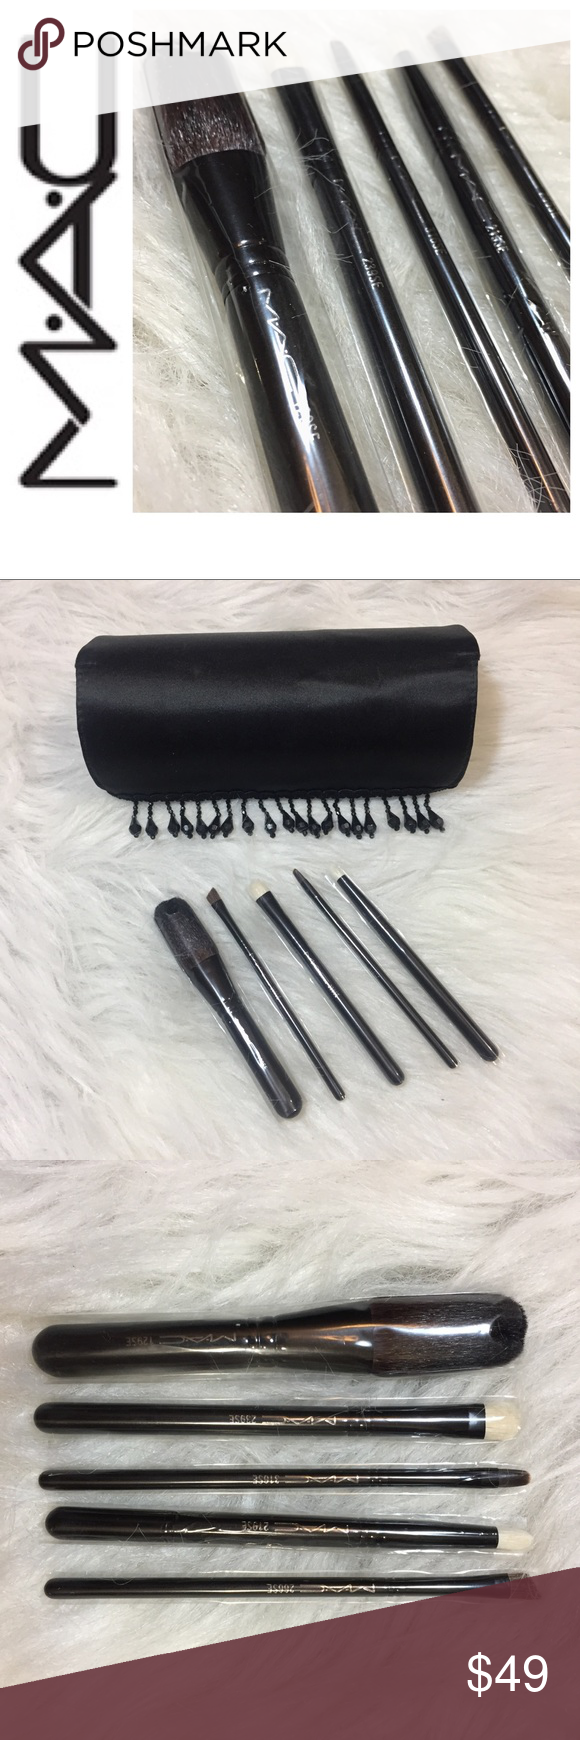 NEW Mac brushes gift set in black. NWT Makeup brushes